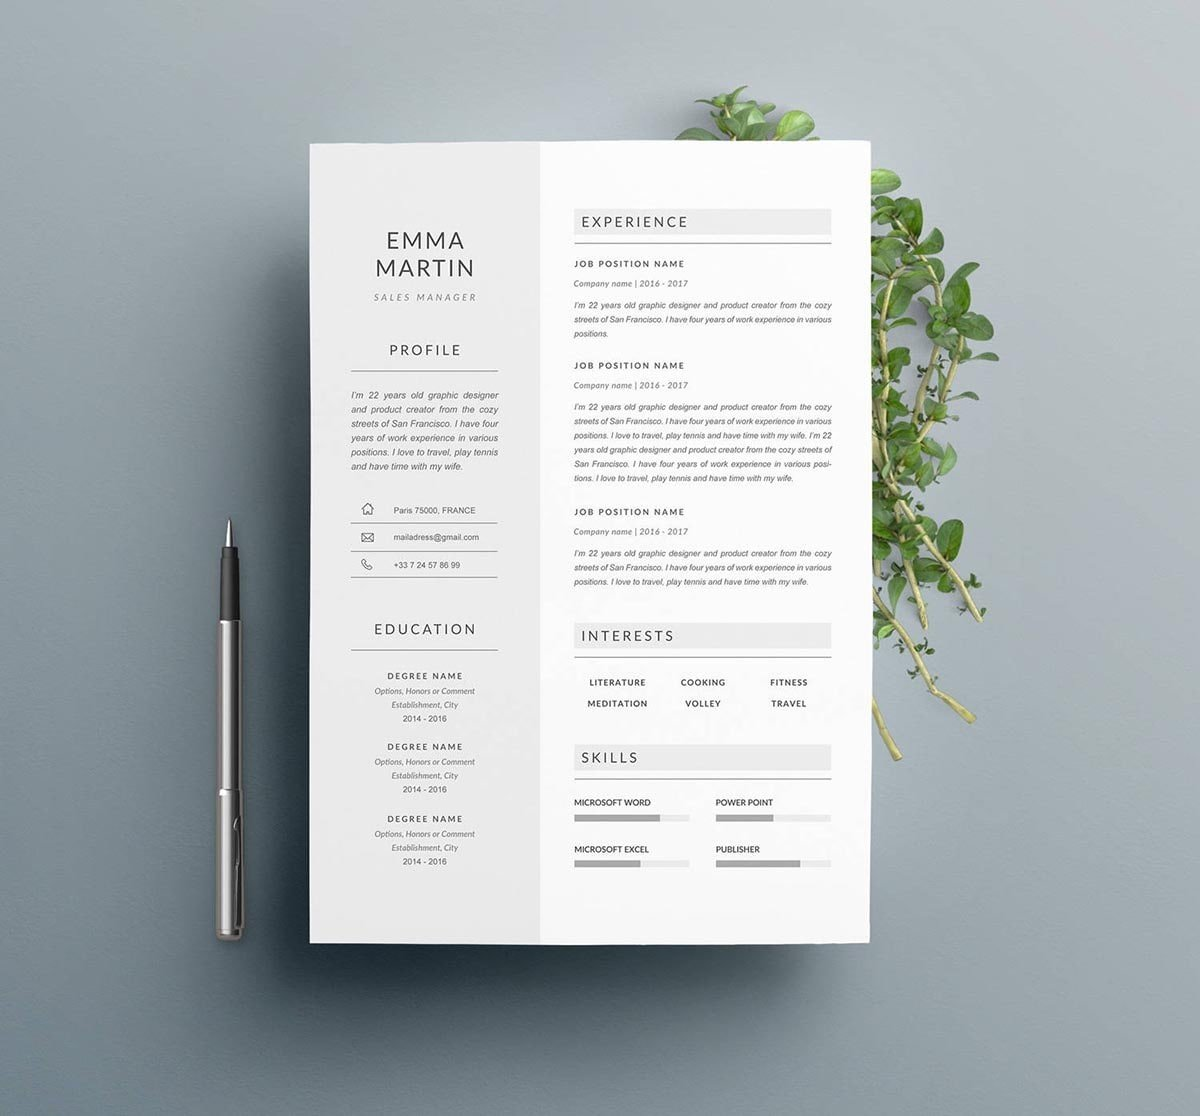 free resume templates i can download